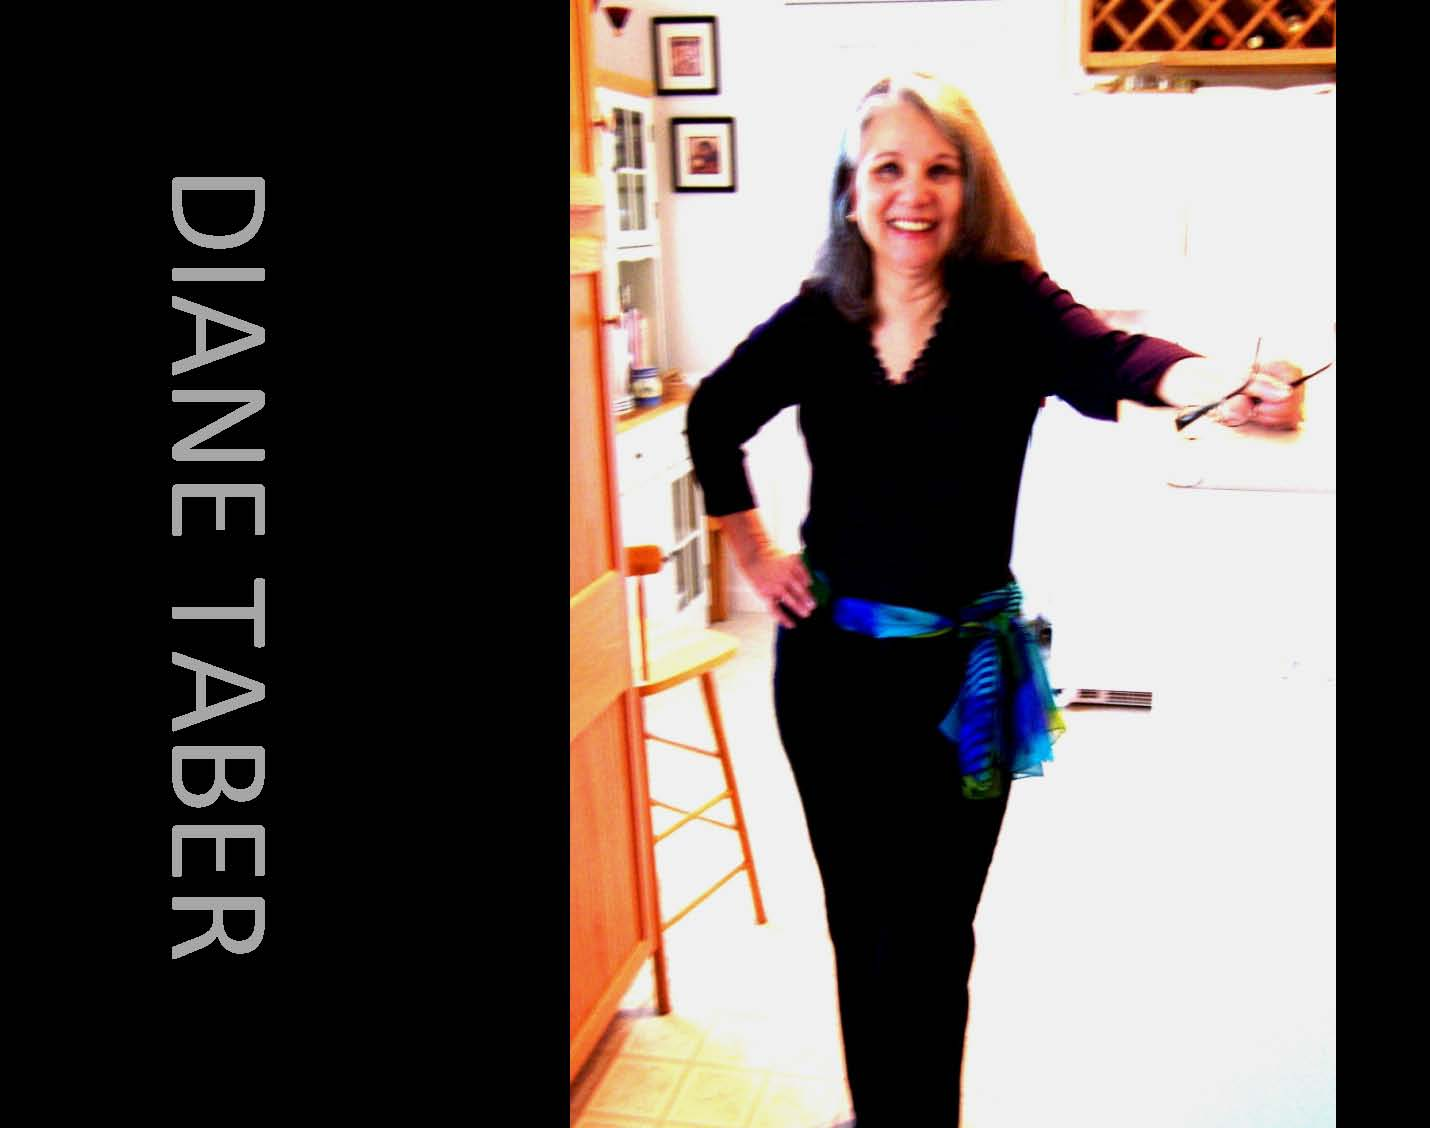 Diane web site photo